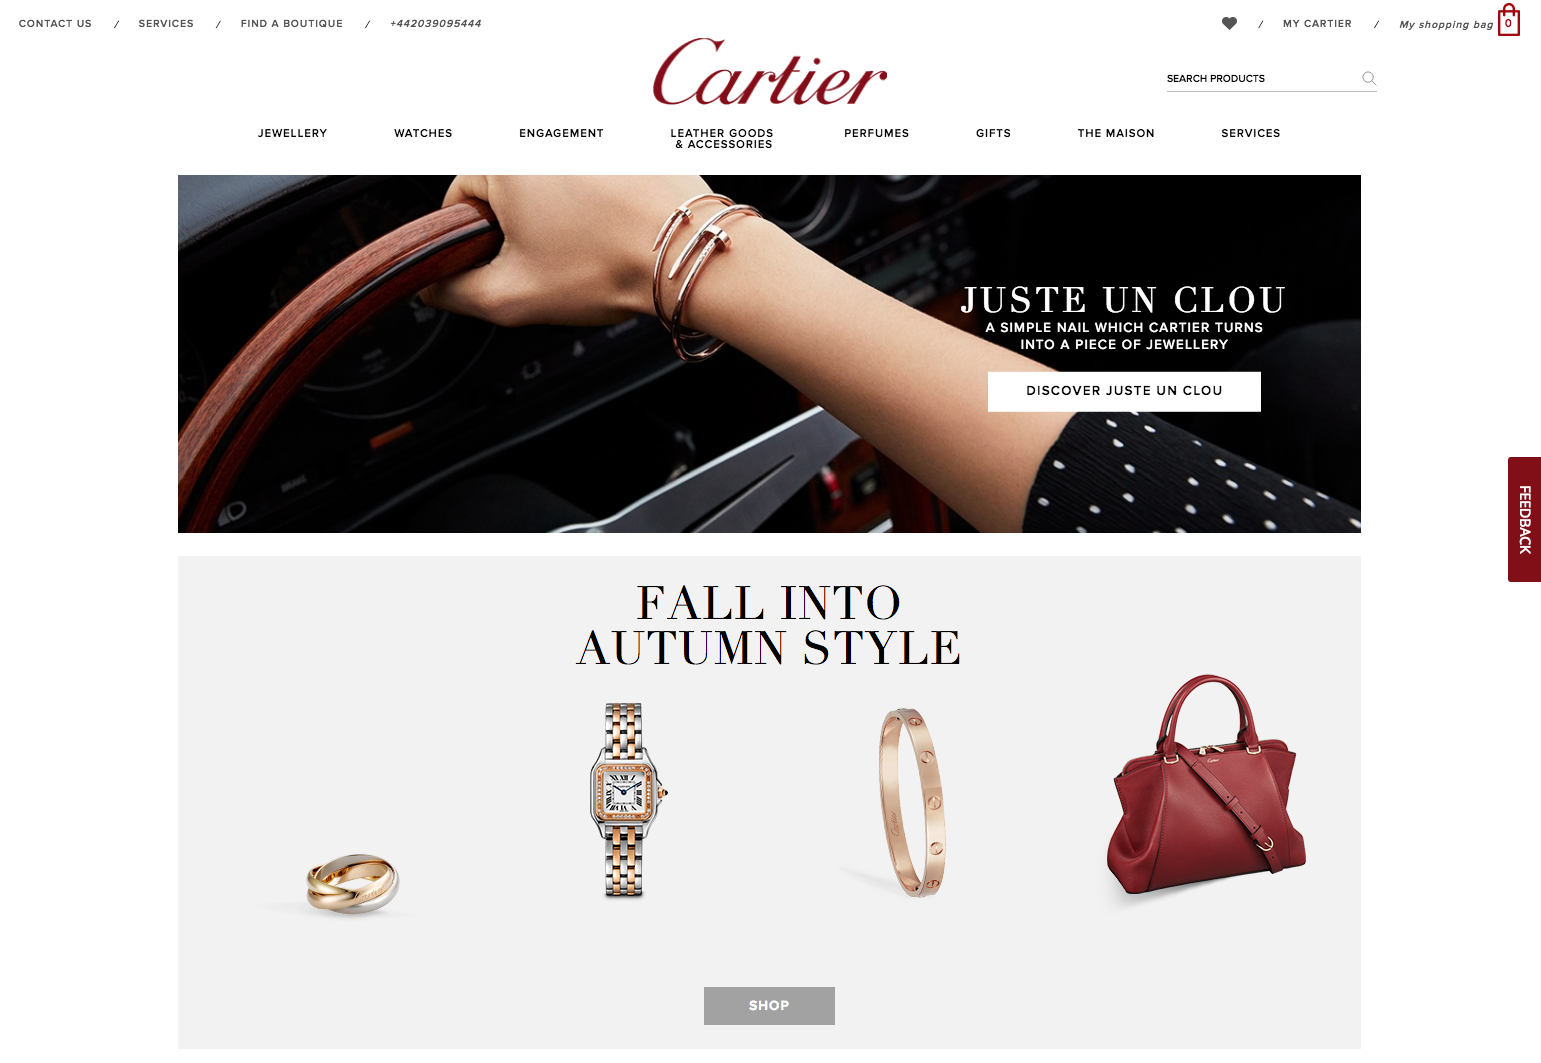 cartier luxury website design